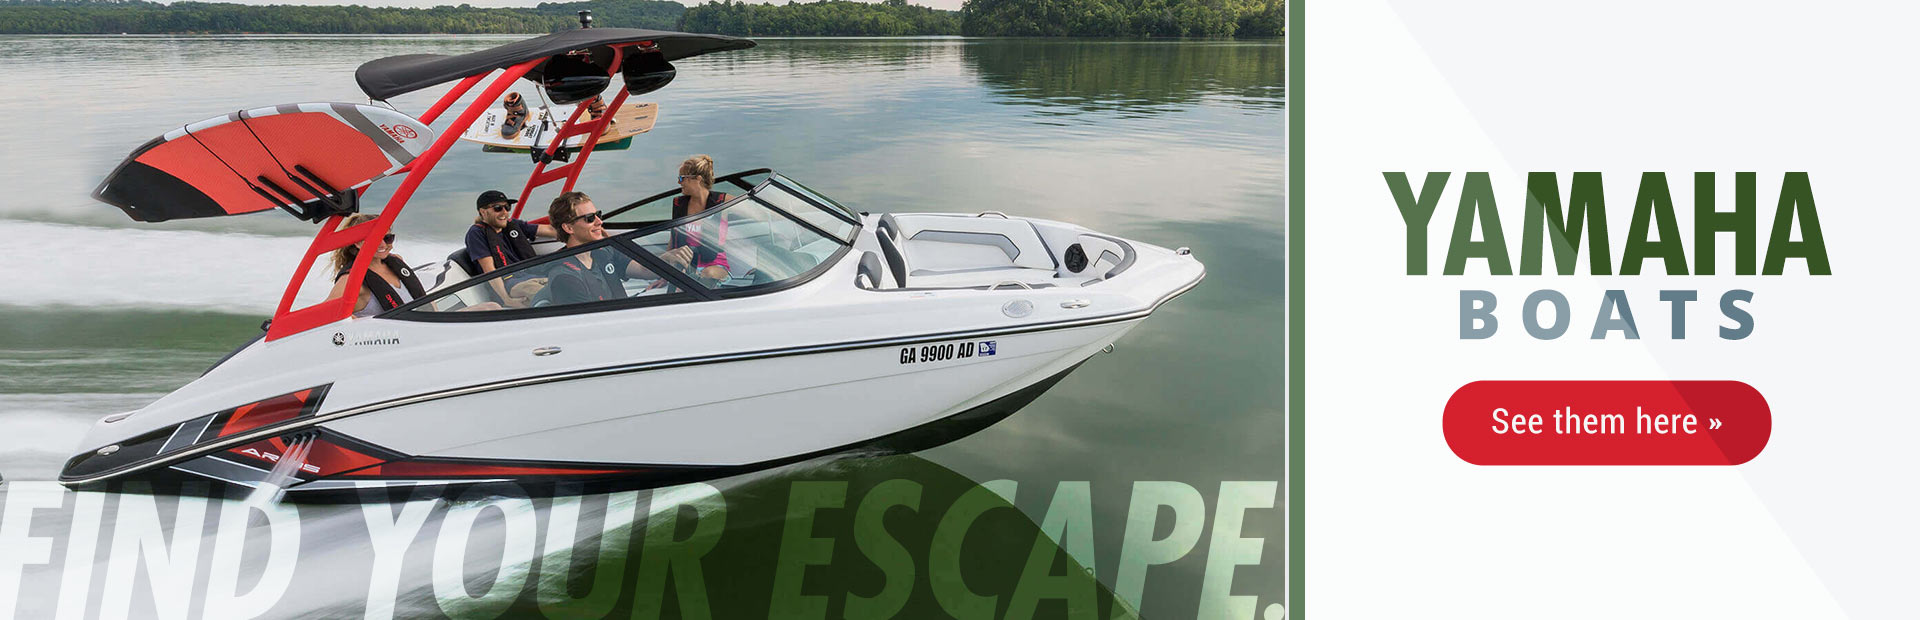 Yamaha Boats: Click here to view the models.